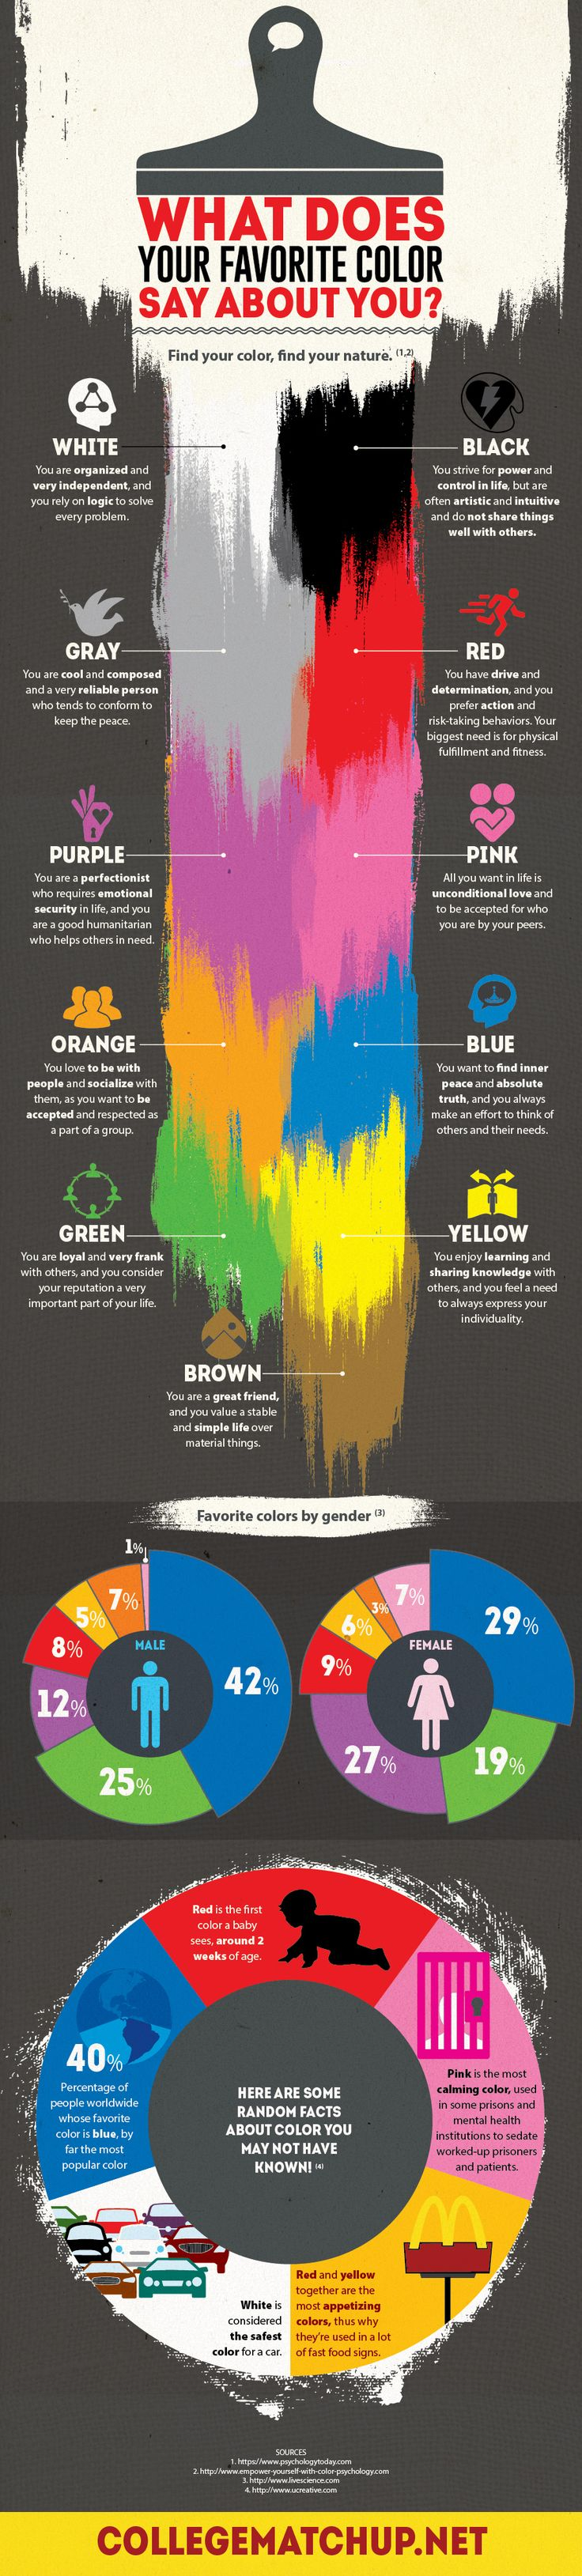 We discussed how certain colors create a unique sensation which affects everyone in the same way. These sensations can actually make you more comfortable in stresssful situations and hence more productive. However we also have different preferences when it comes to liking colors. Emily Parker from Collegematchup.net has created an infographic that links colors with your personality type. Let's check it out.